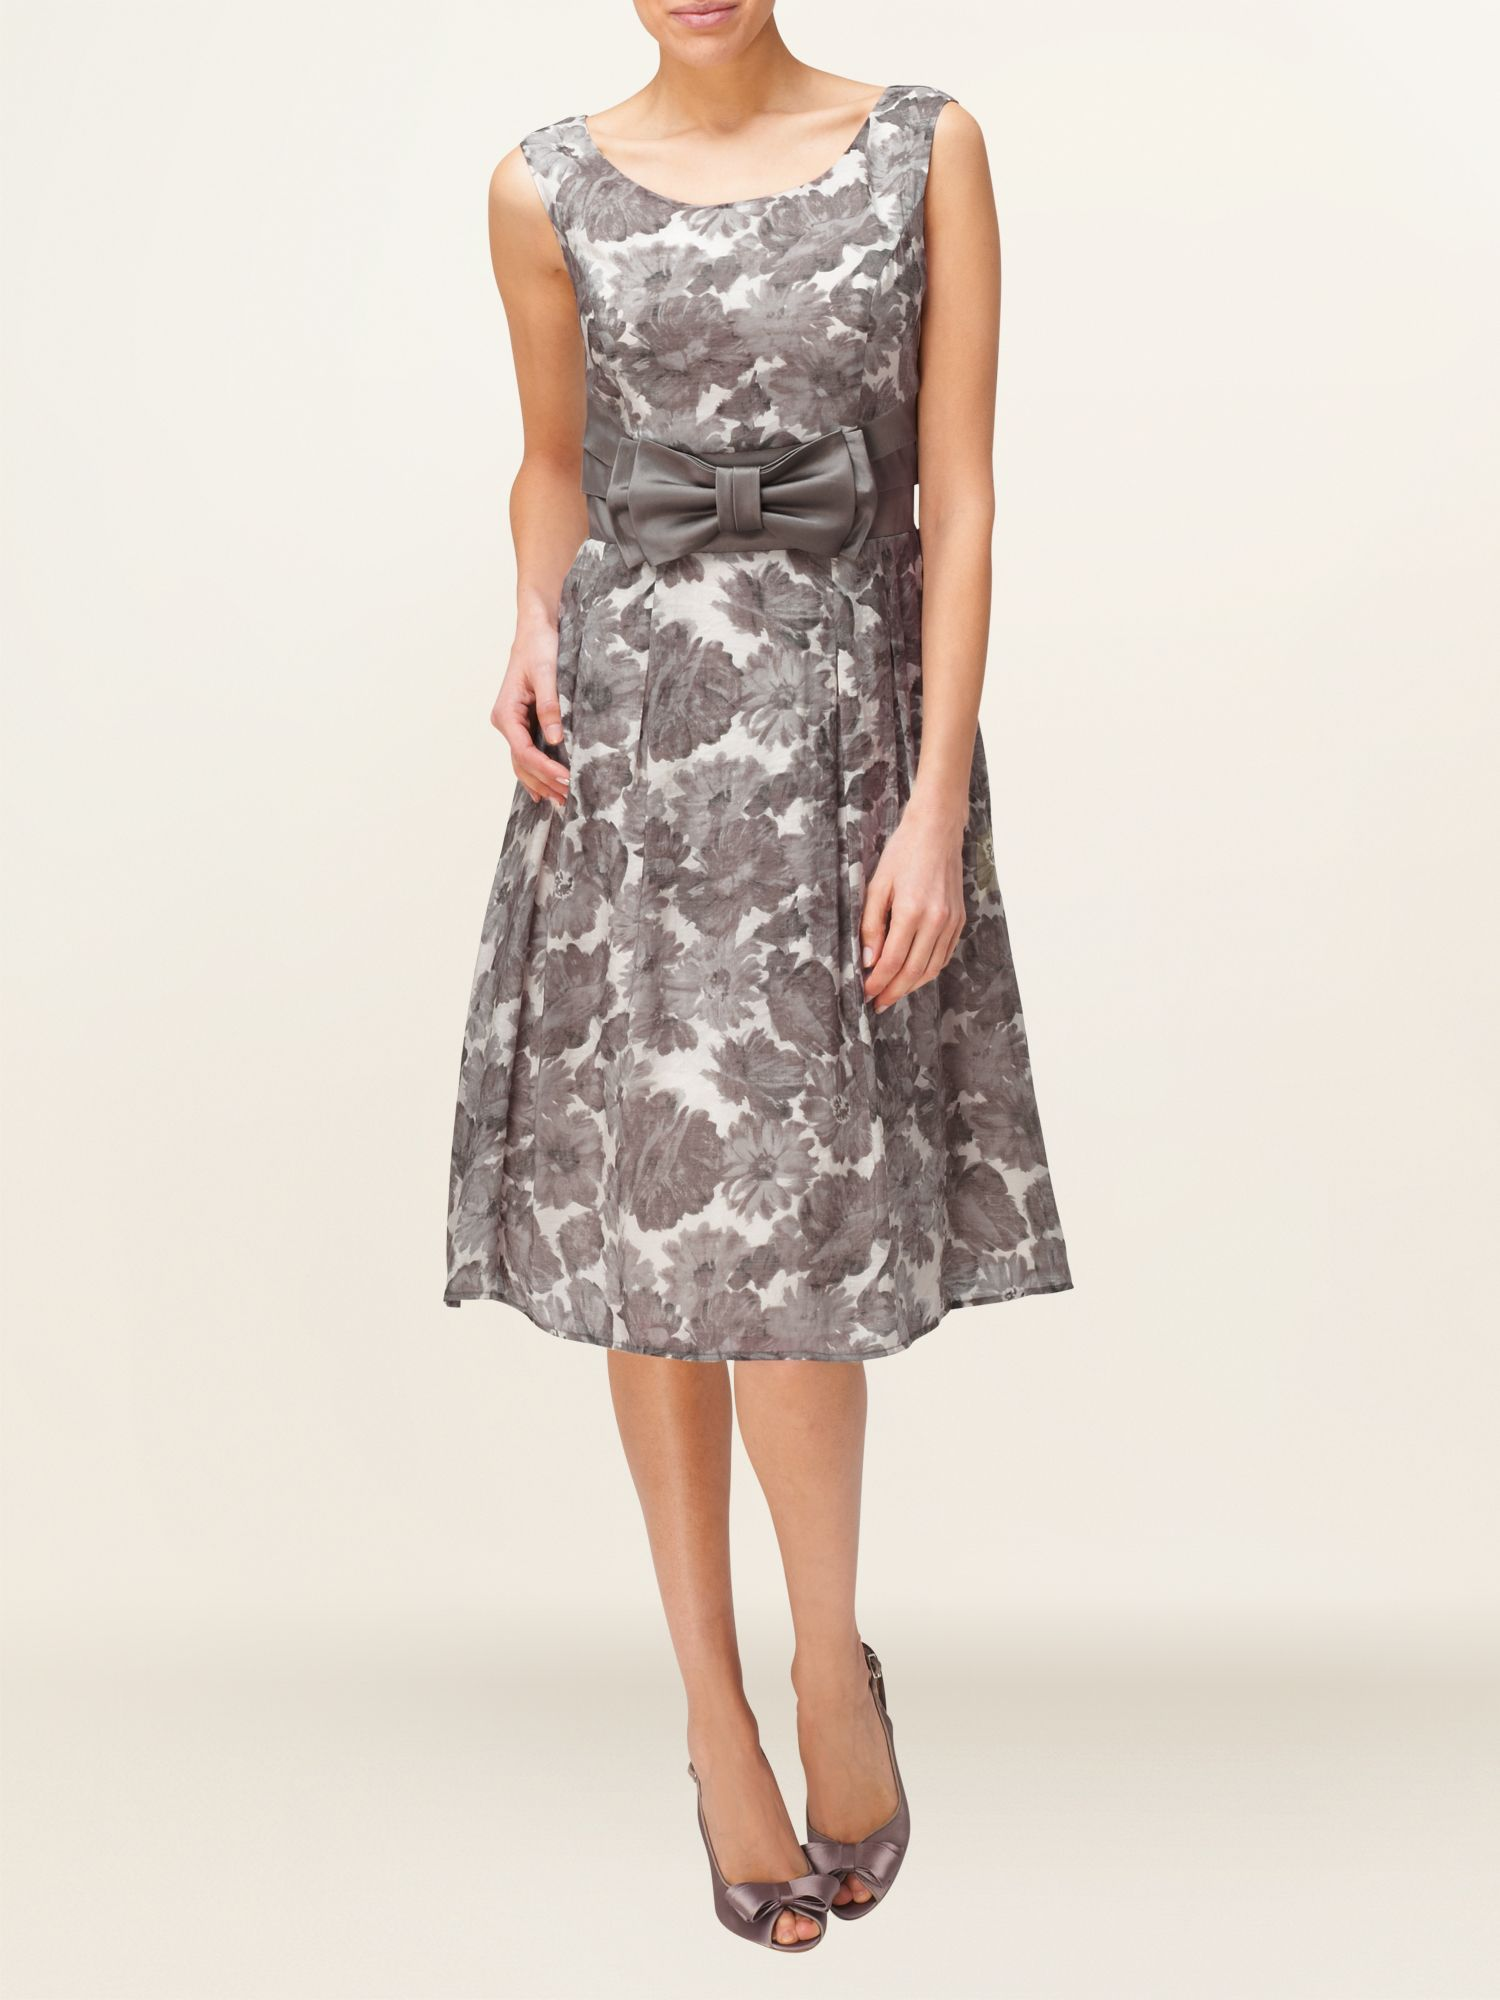 Dalelah dress